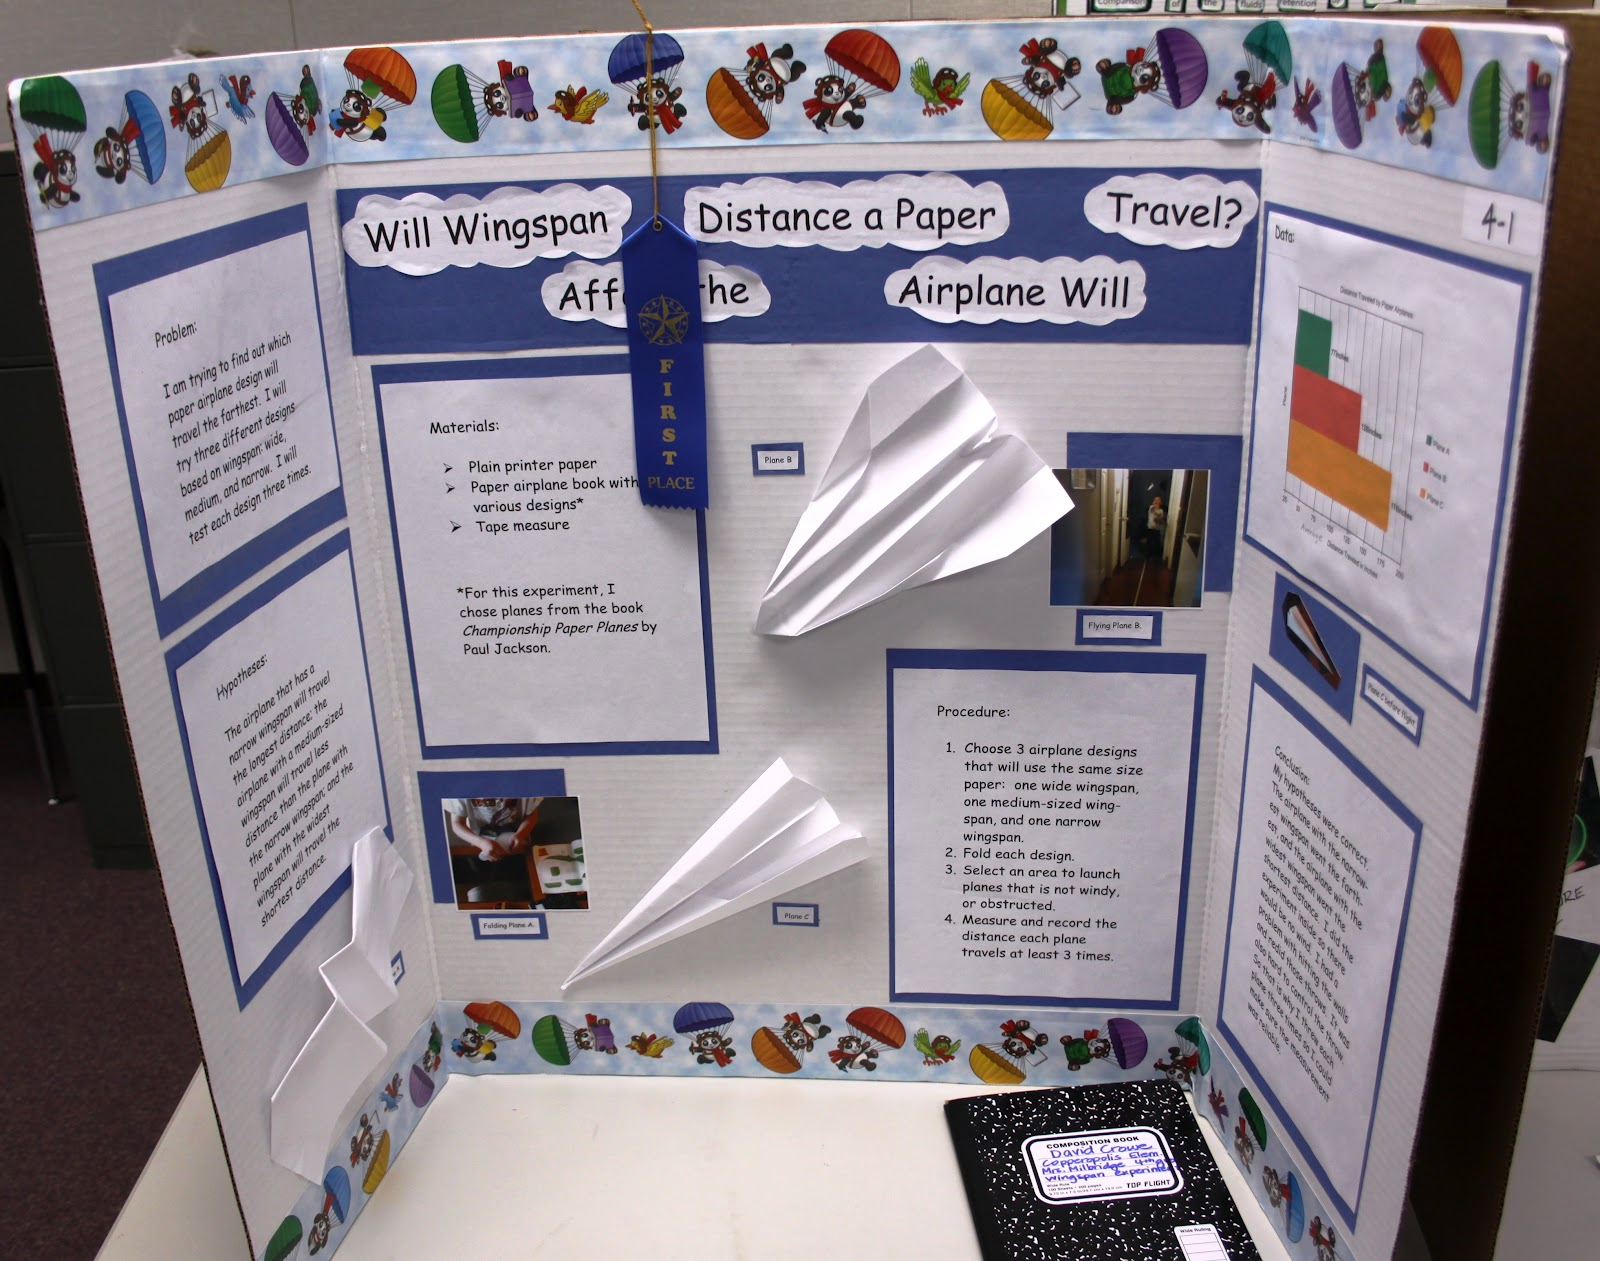 019 Research Paper Middle School Science Fair Template 1st Place Projects For 5th Graders Frightening Full